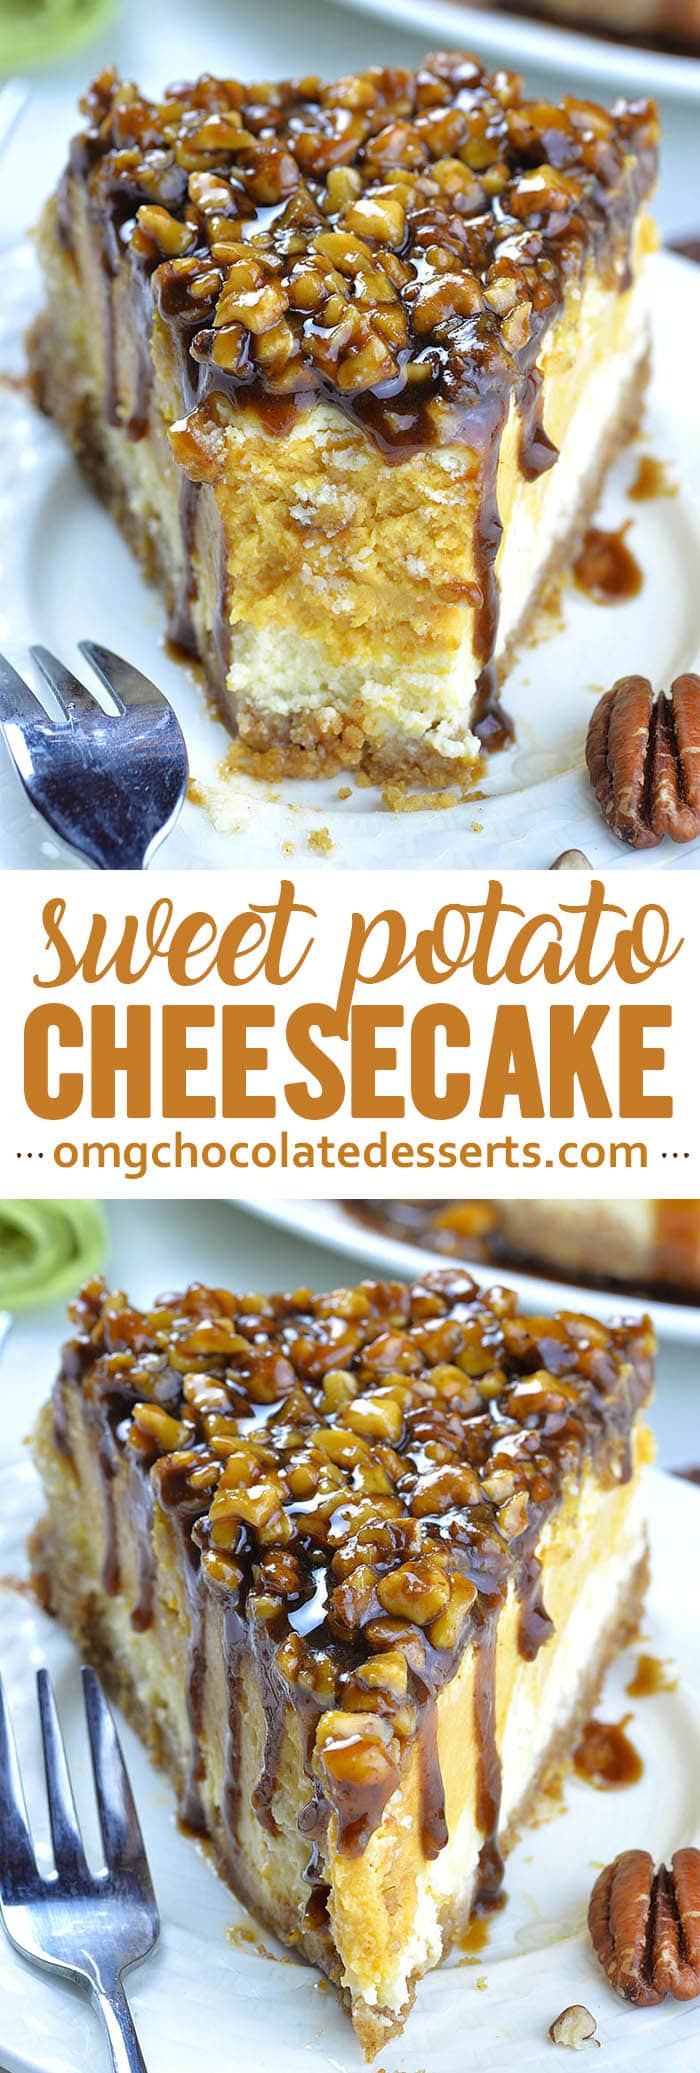 Sweet Potato Cheesecake with Pecan Topping is delicious dessert for holiday season, especially Thanksgiving and Christmas! Sweet potato pie, pecan pie and cheesecake are traditional desserts, often served during the holidays.